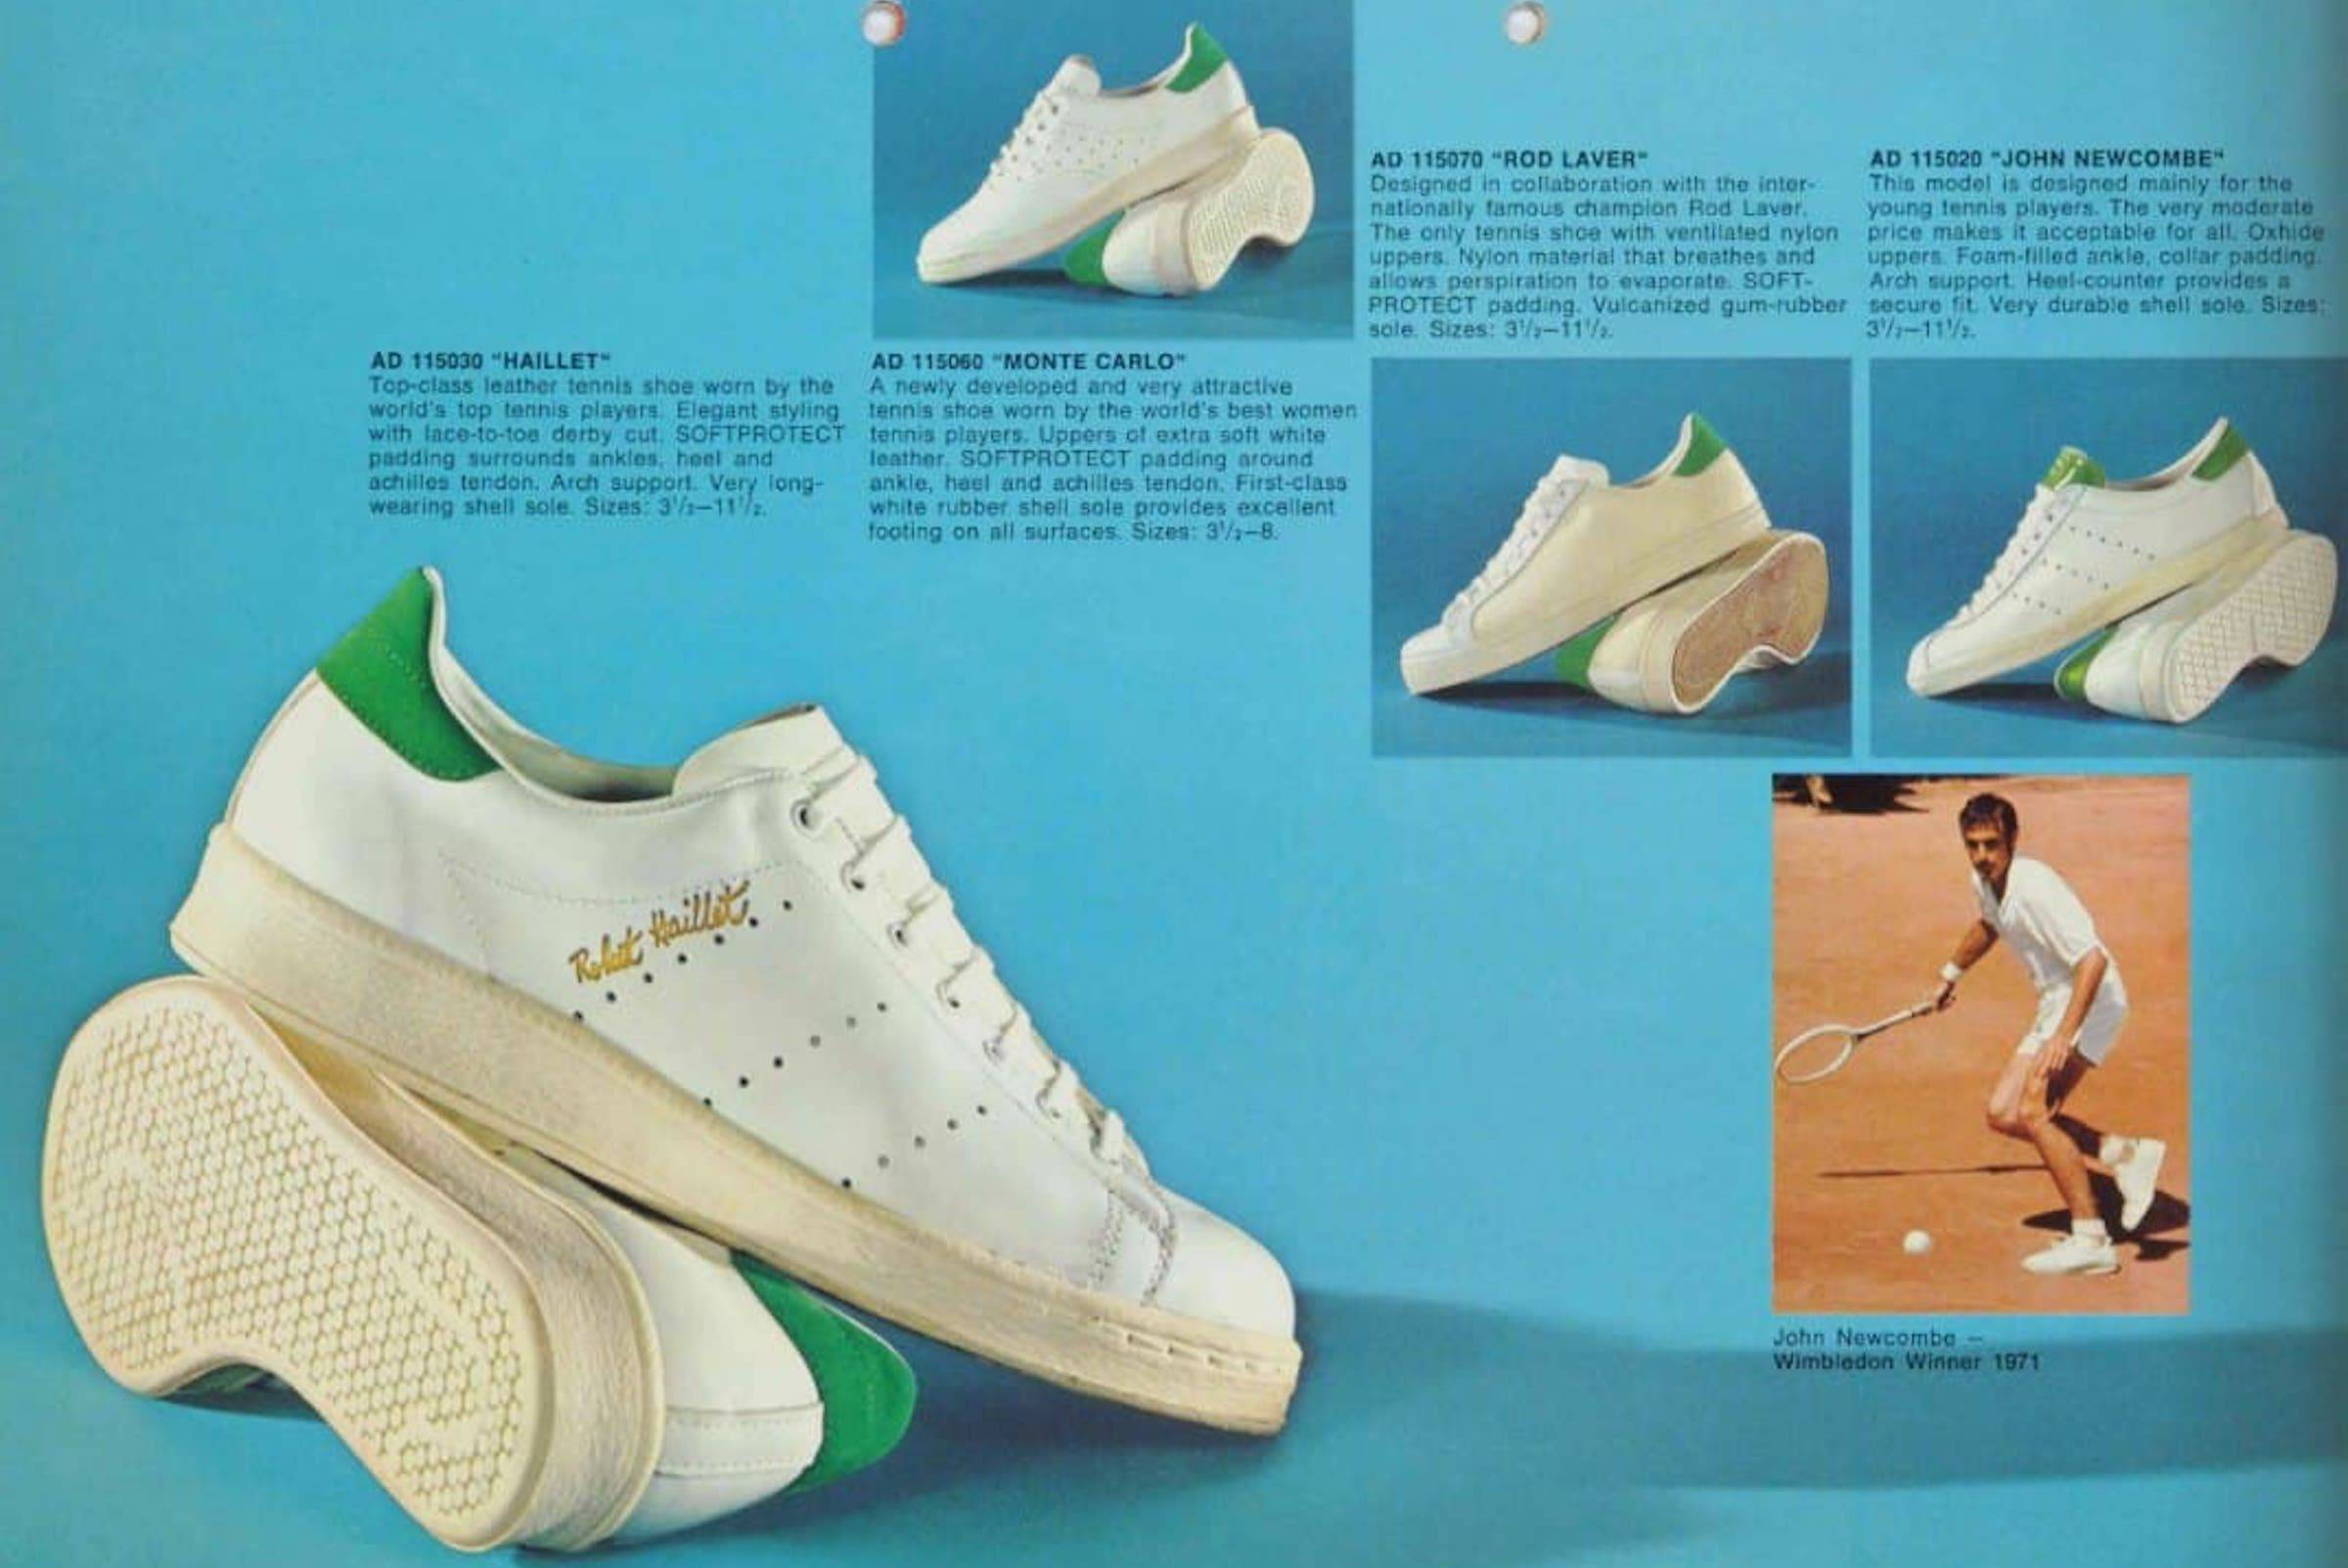 An of-the-era catalog showing adidas' roster of tennis shoes, prominently featuring the adidas Robert Haillet.